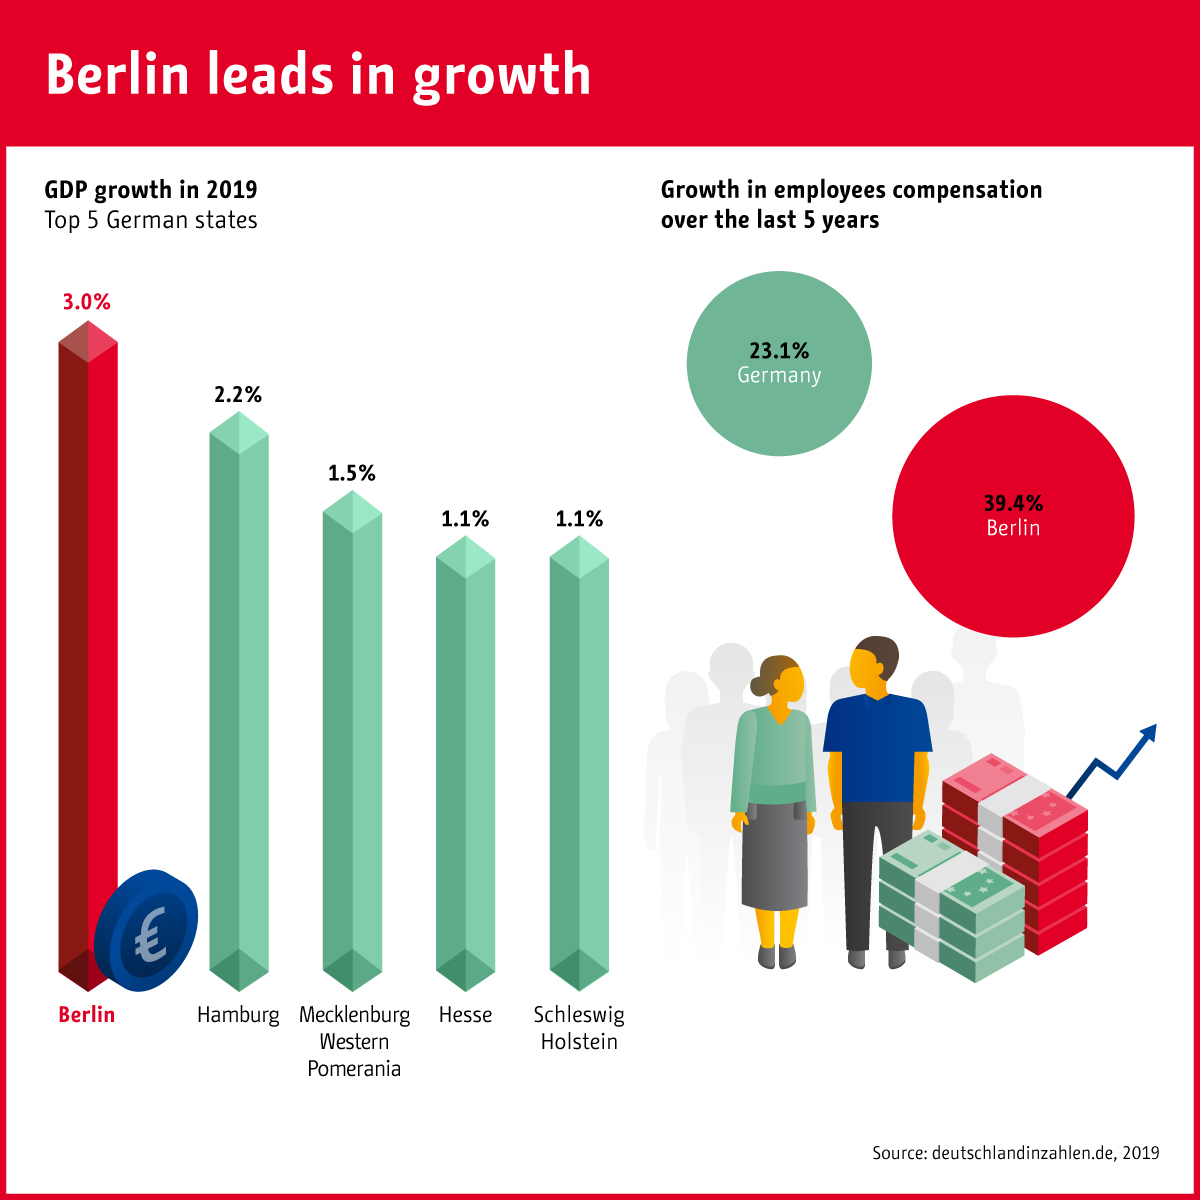 Berlin leads in growth